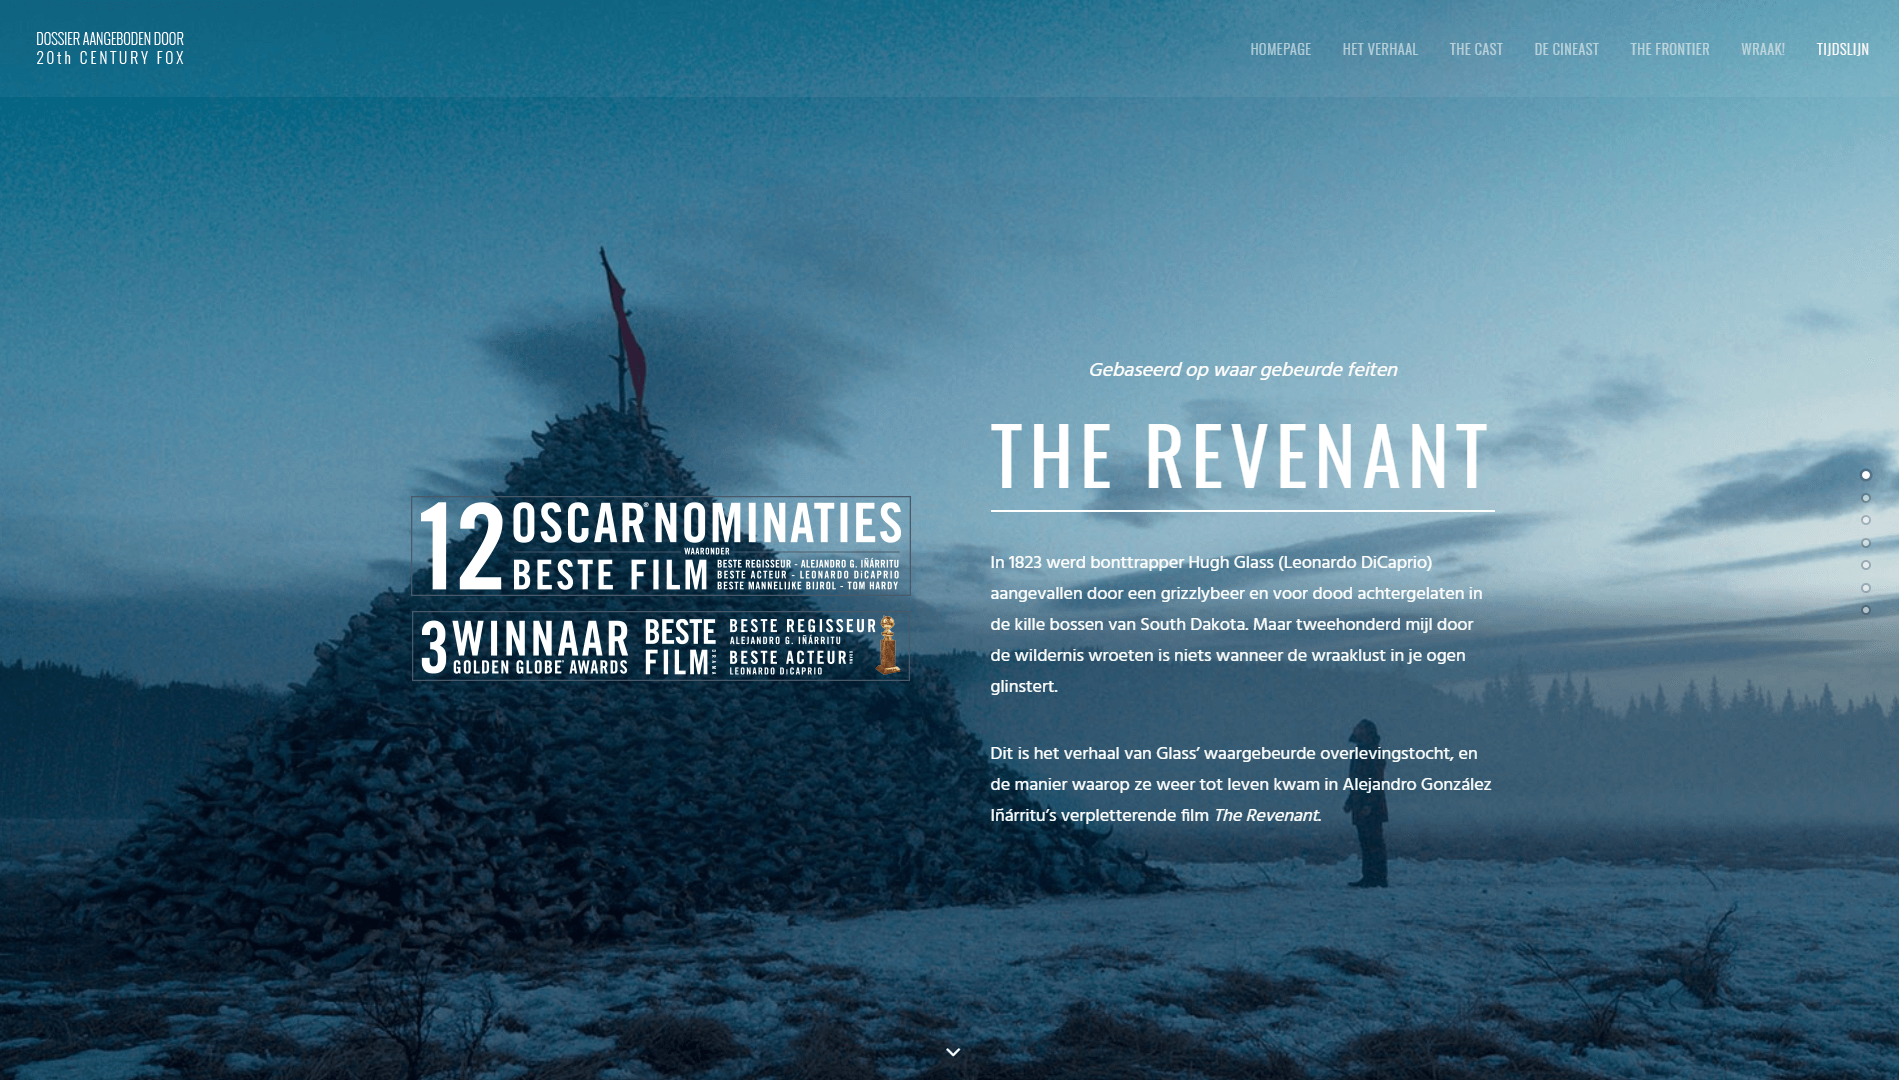 The Revenant's Belgian website.